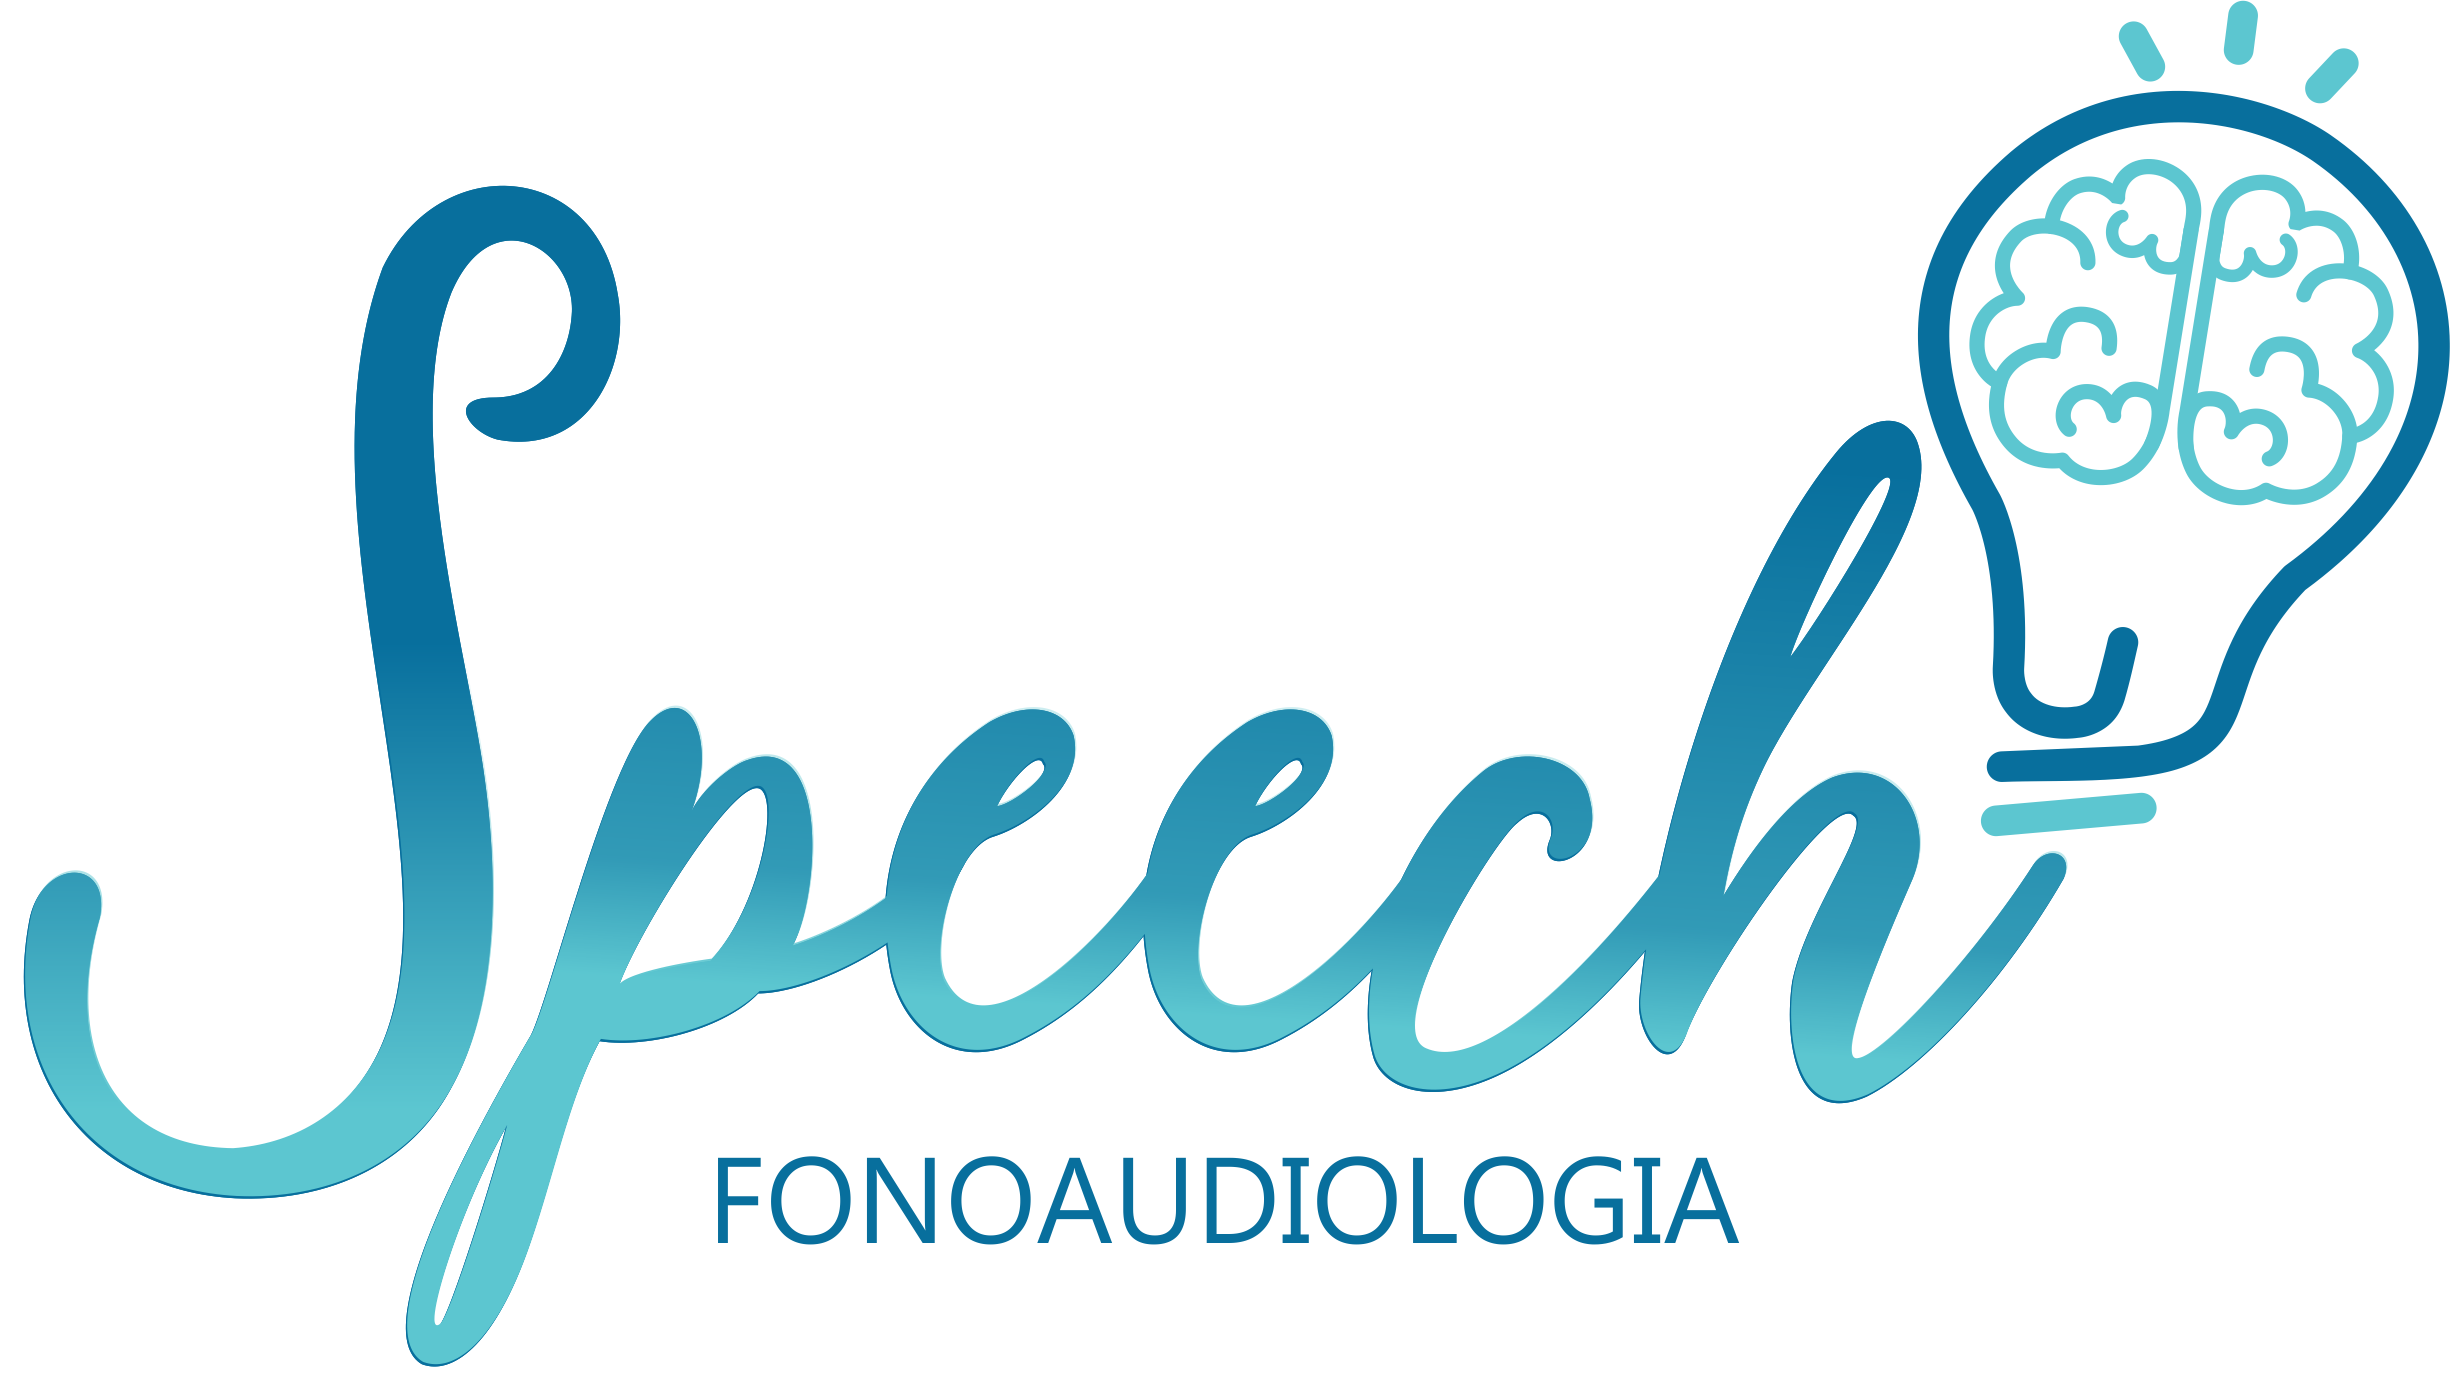 Speech Fonoaudiologia